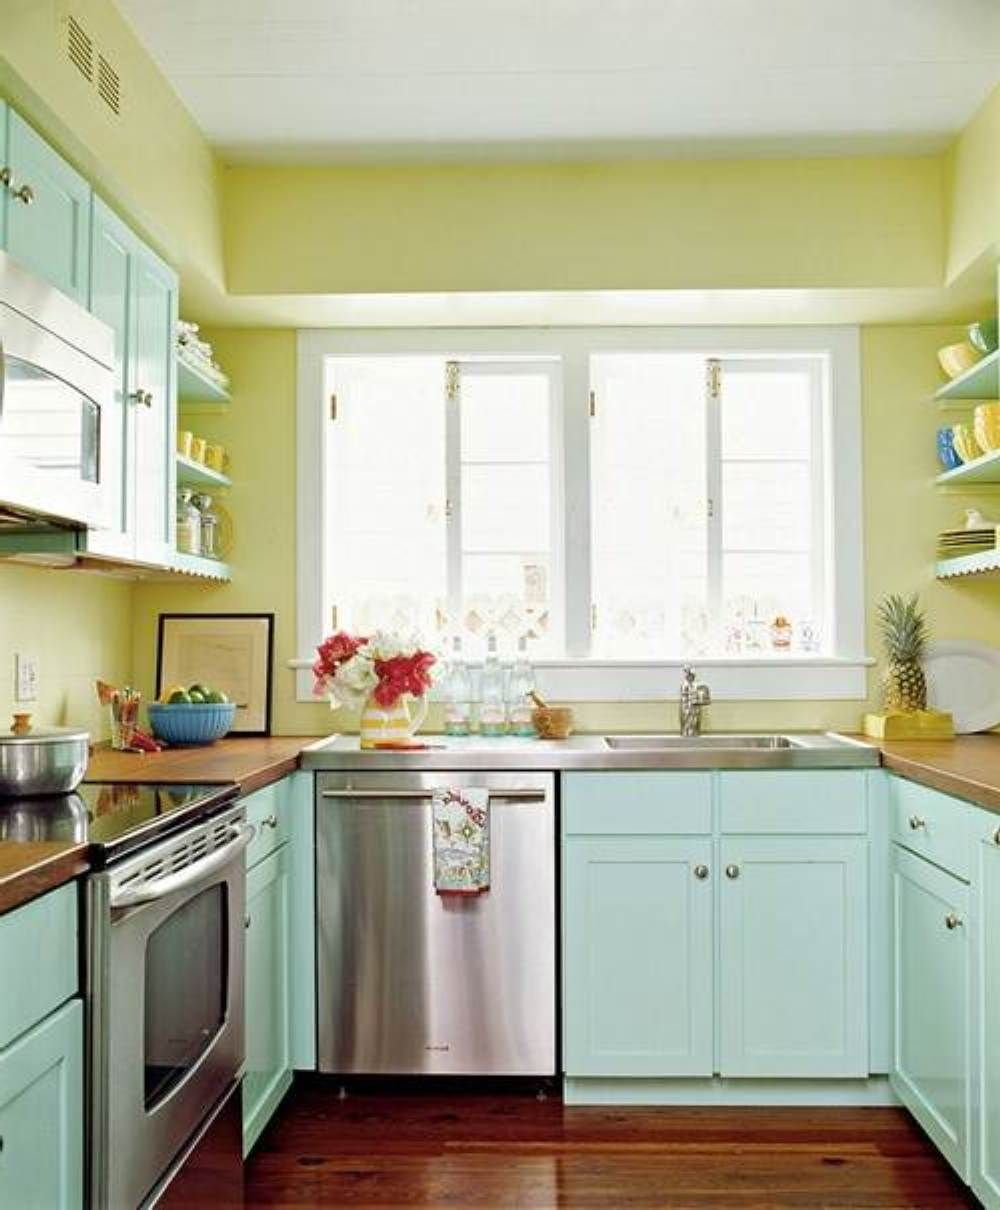 Small Kitchen Design IdeasWall colors Small kitchens and